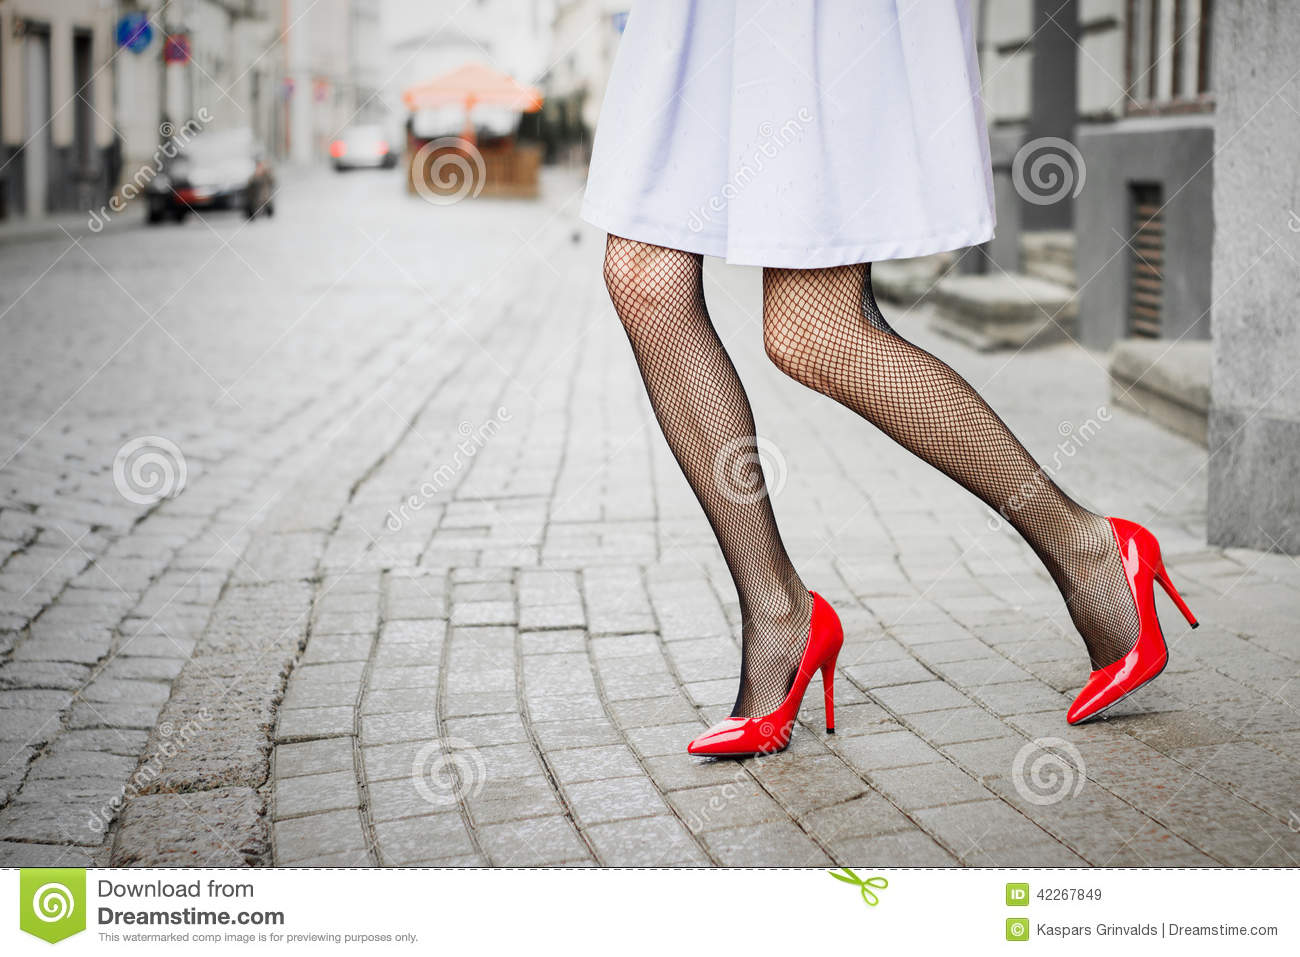 Portant a chaussures - Achat / Vente Portant a chaussures